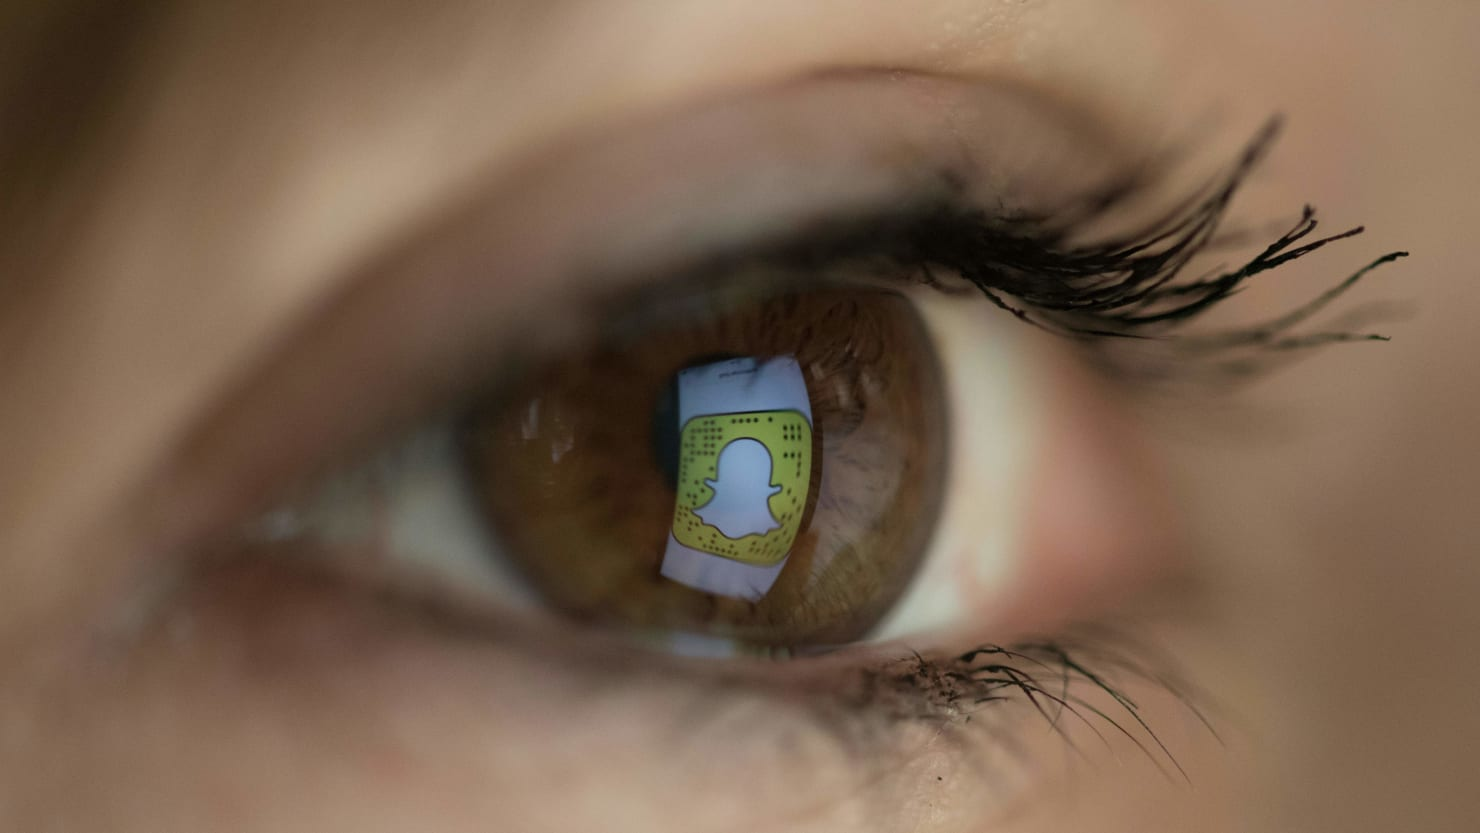 Snapchat Employees Spied on Users by Abusing Data Access: Report